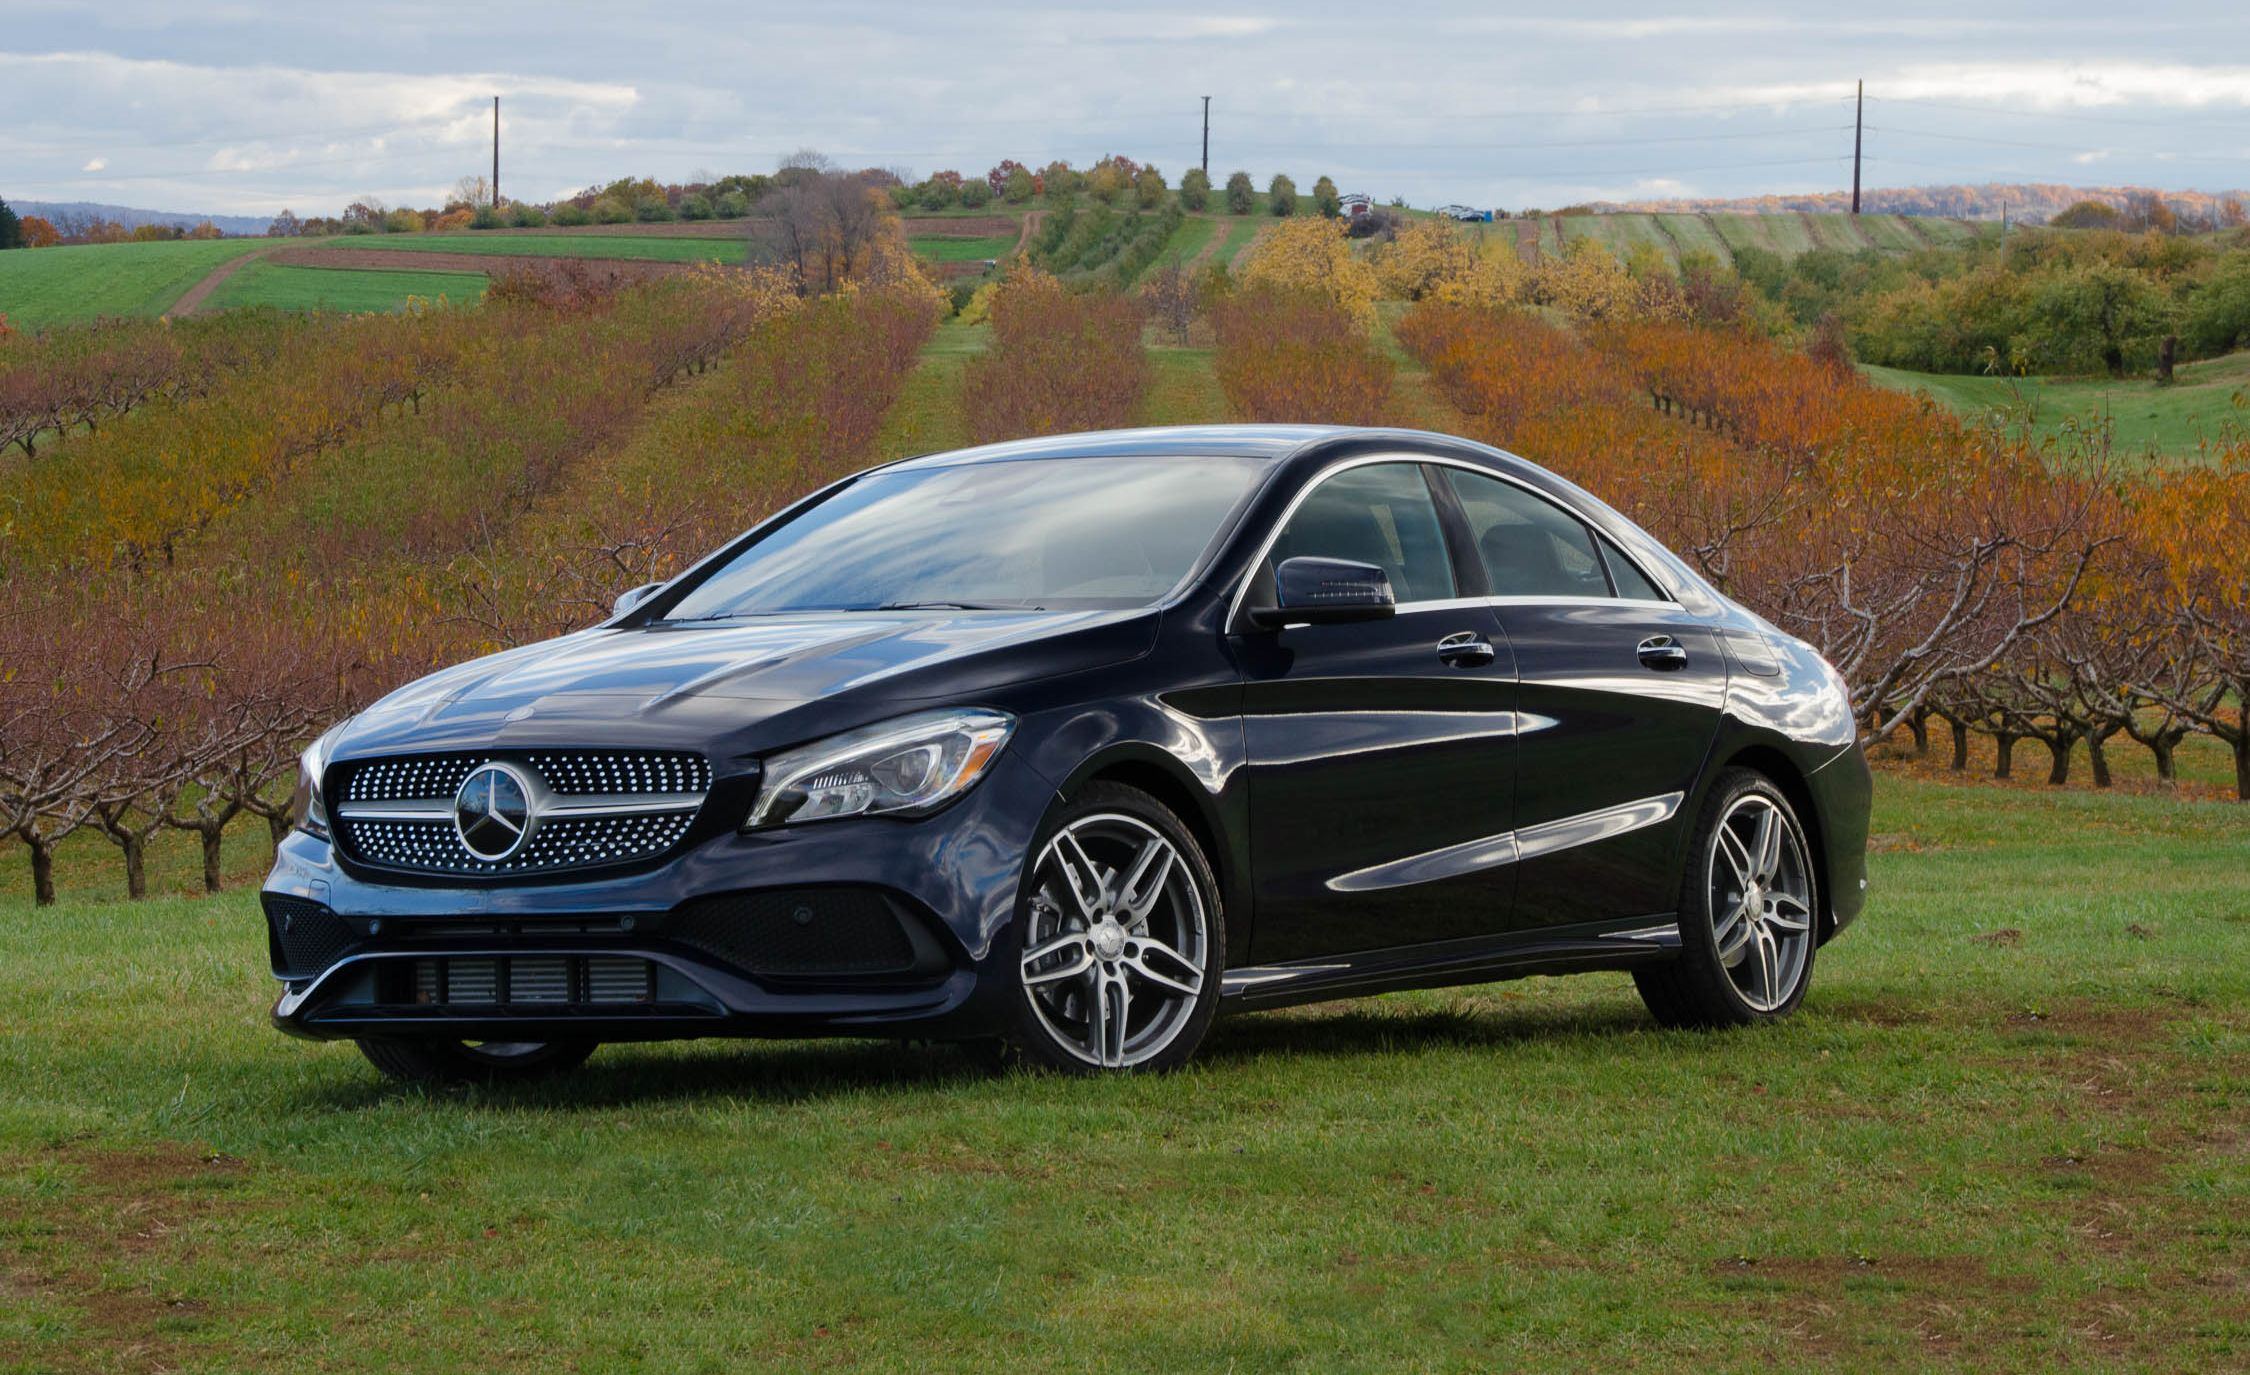 2020 Mercedes-Benz CLA-class Reviews | Mercedes-Benz CLA ...